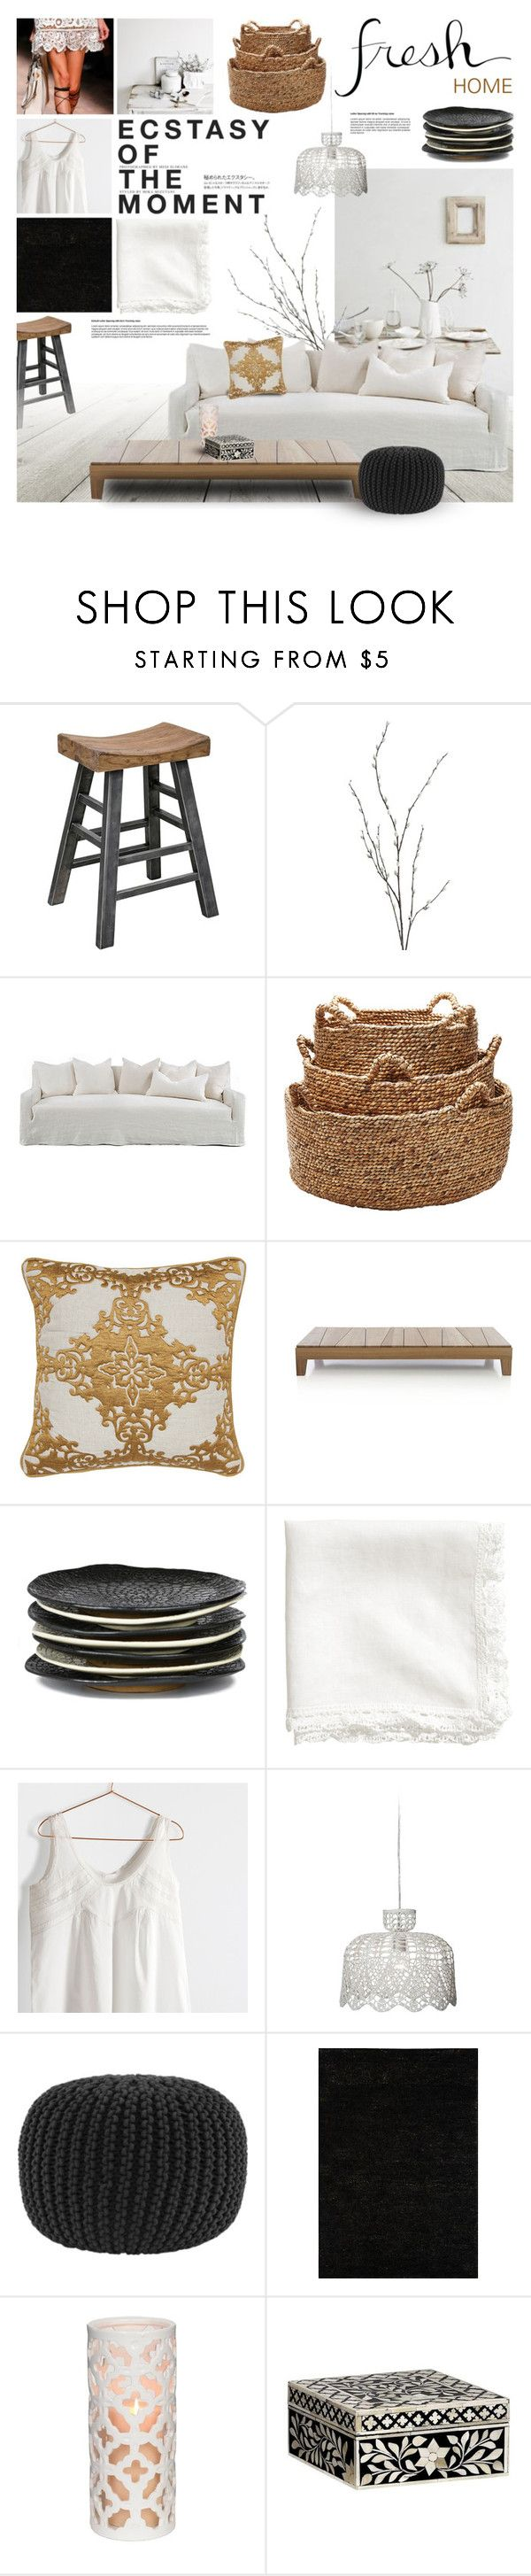 best villa home collection images on pinterest  accent  -  interiors interior design home home decor interior decoratinguniversal lighting and decor pier  imports lazy susan and villa homecollection